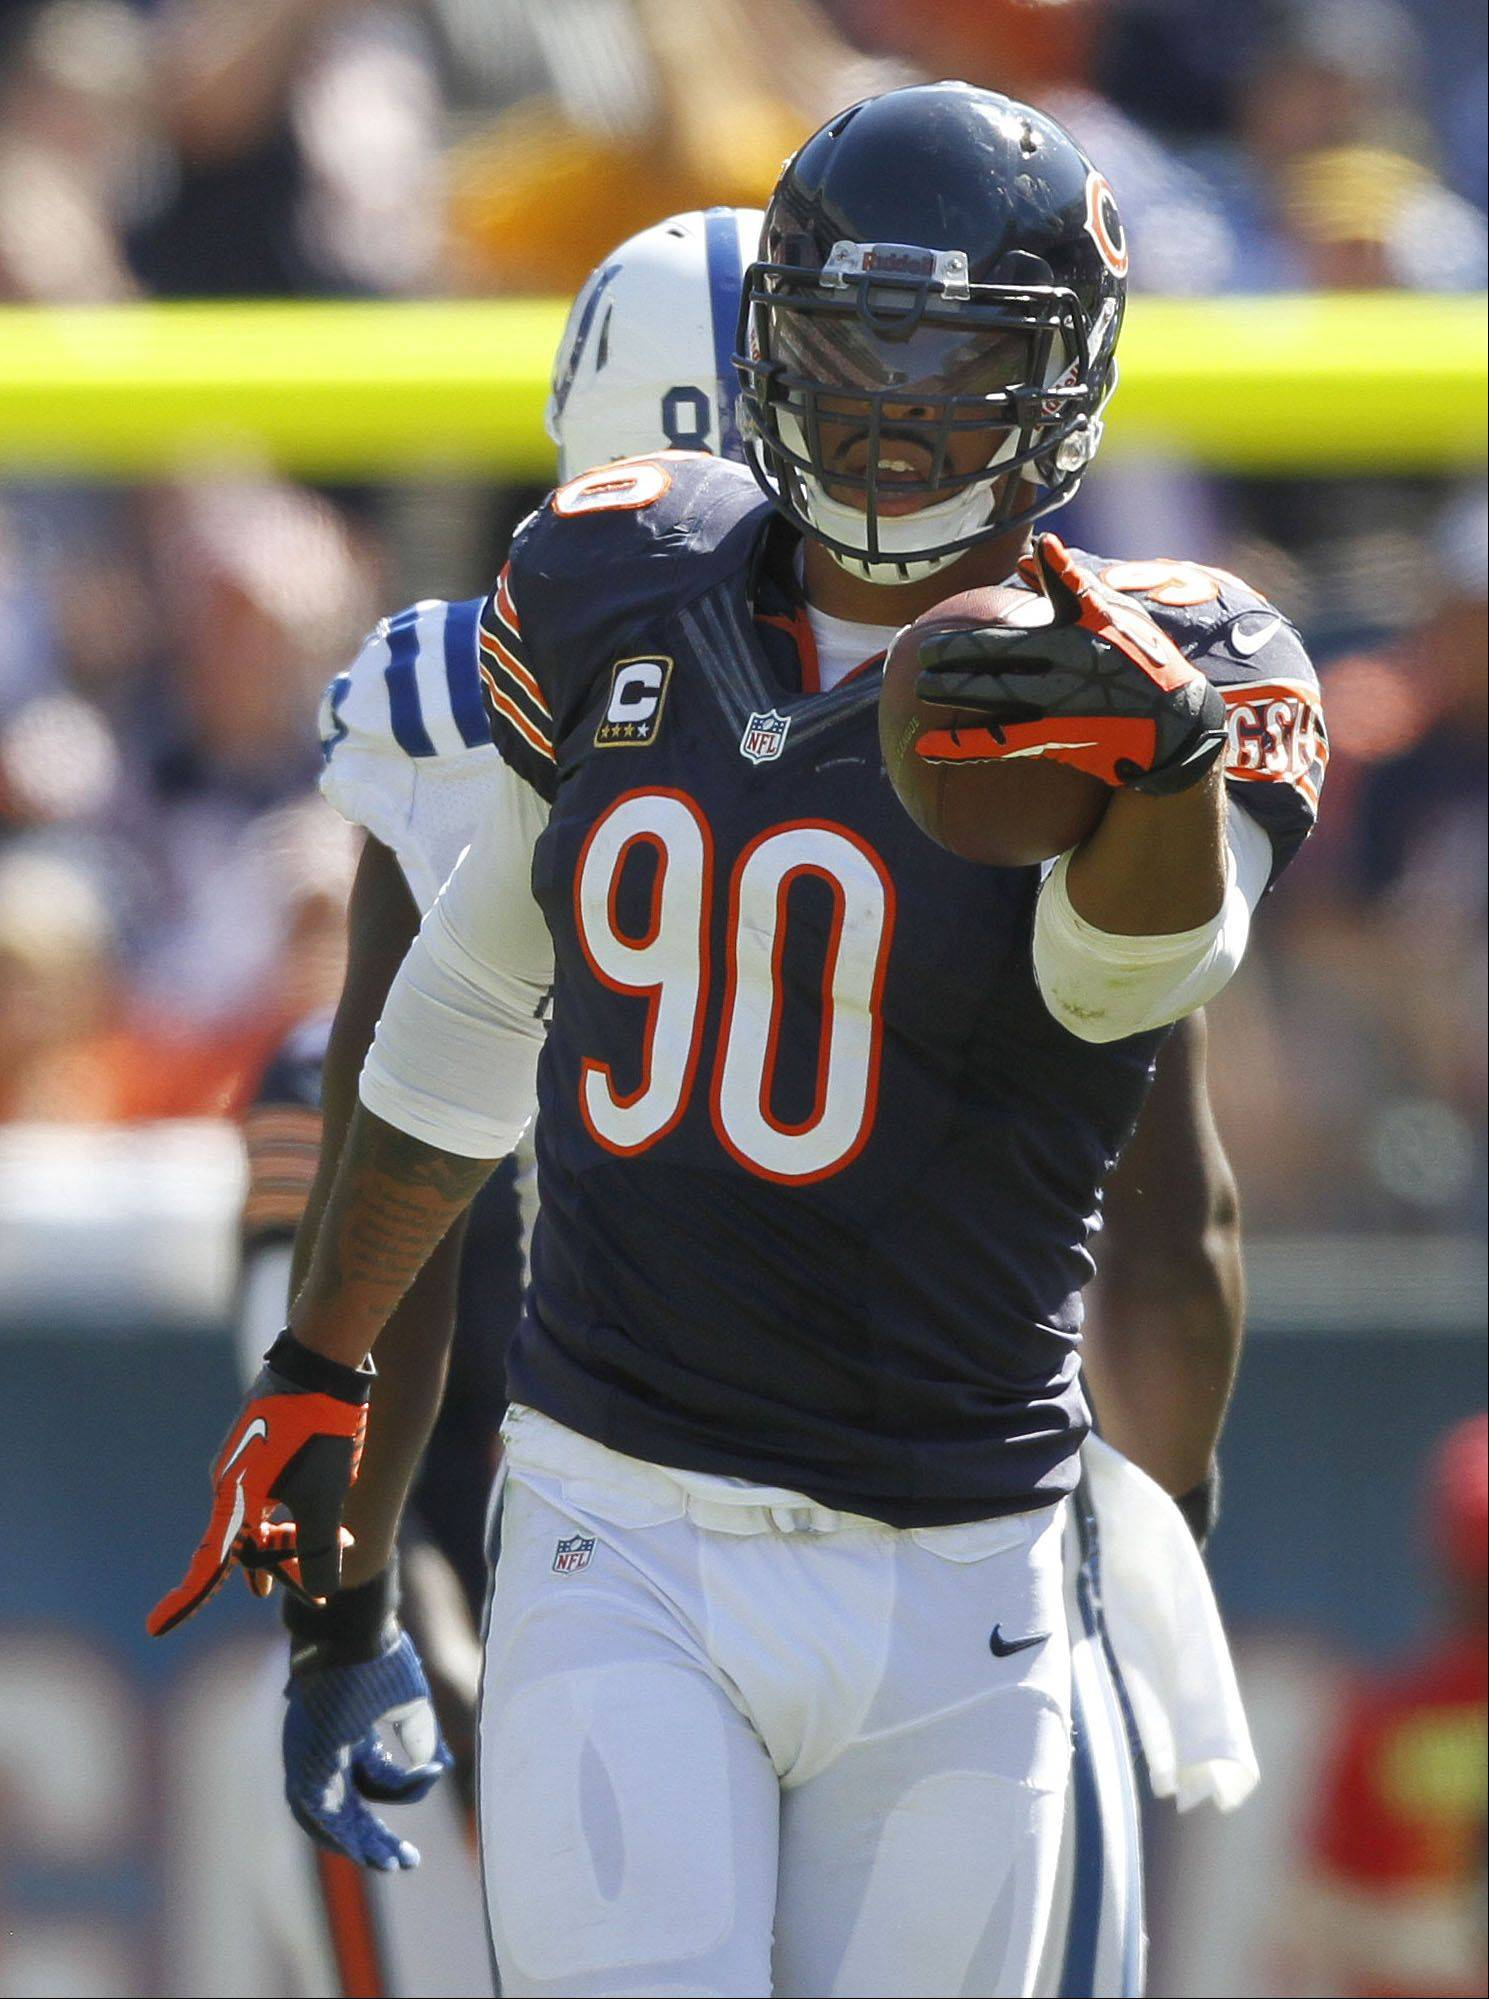 Chicago Bears defensive end Julius Peppers celebrates after recovering a fumble during the Bears season opener.